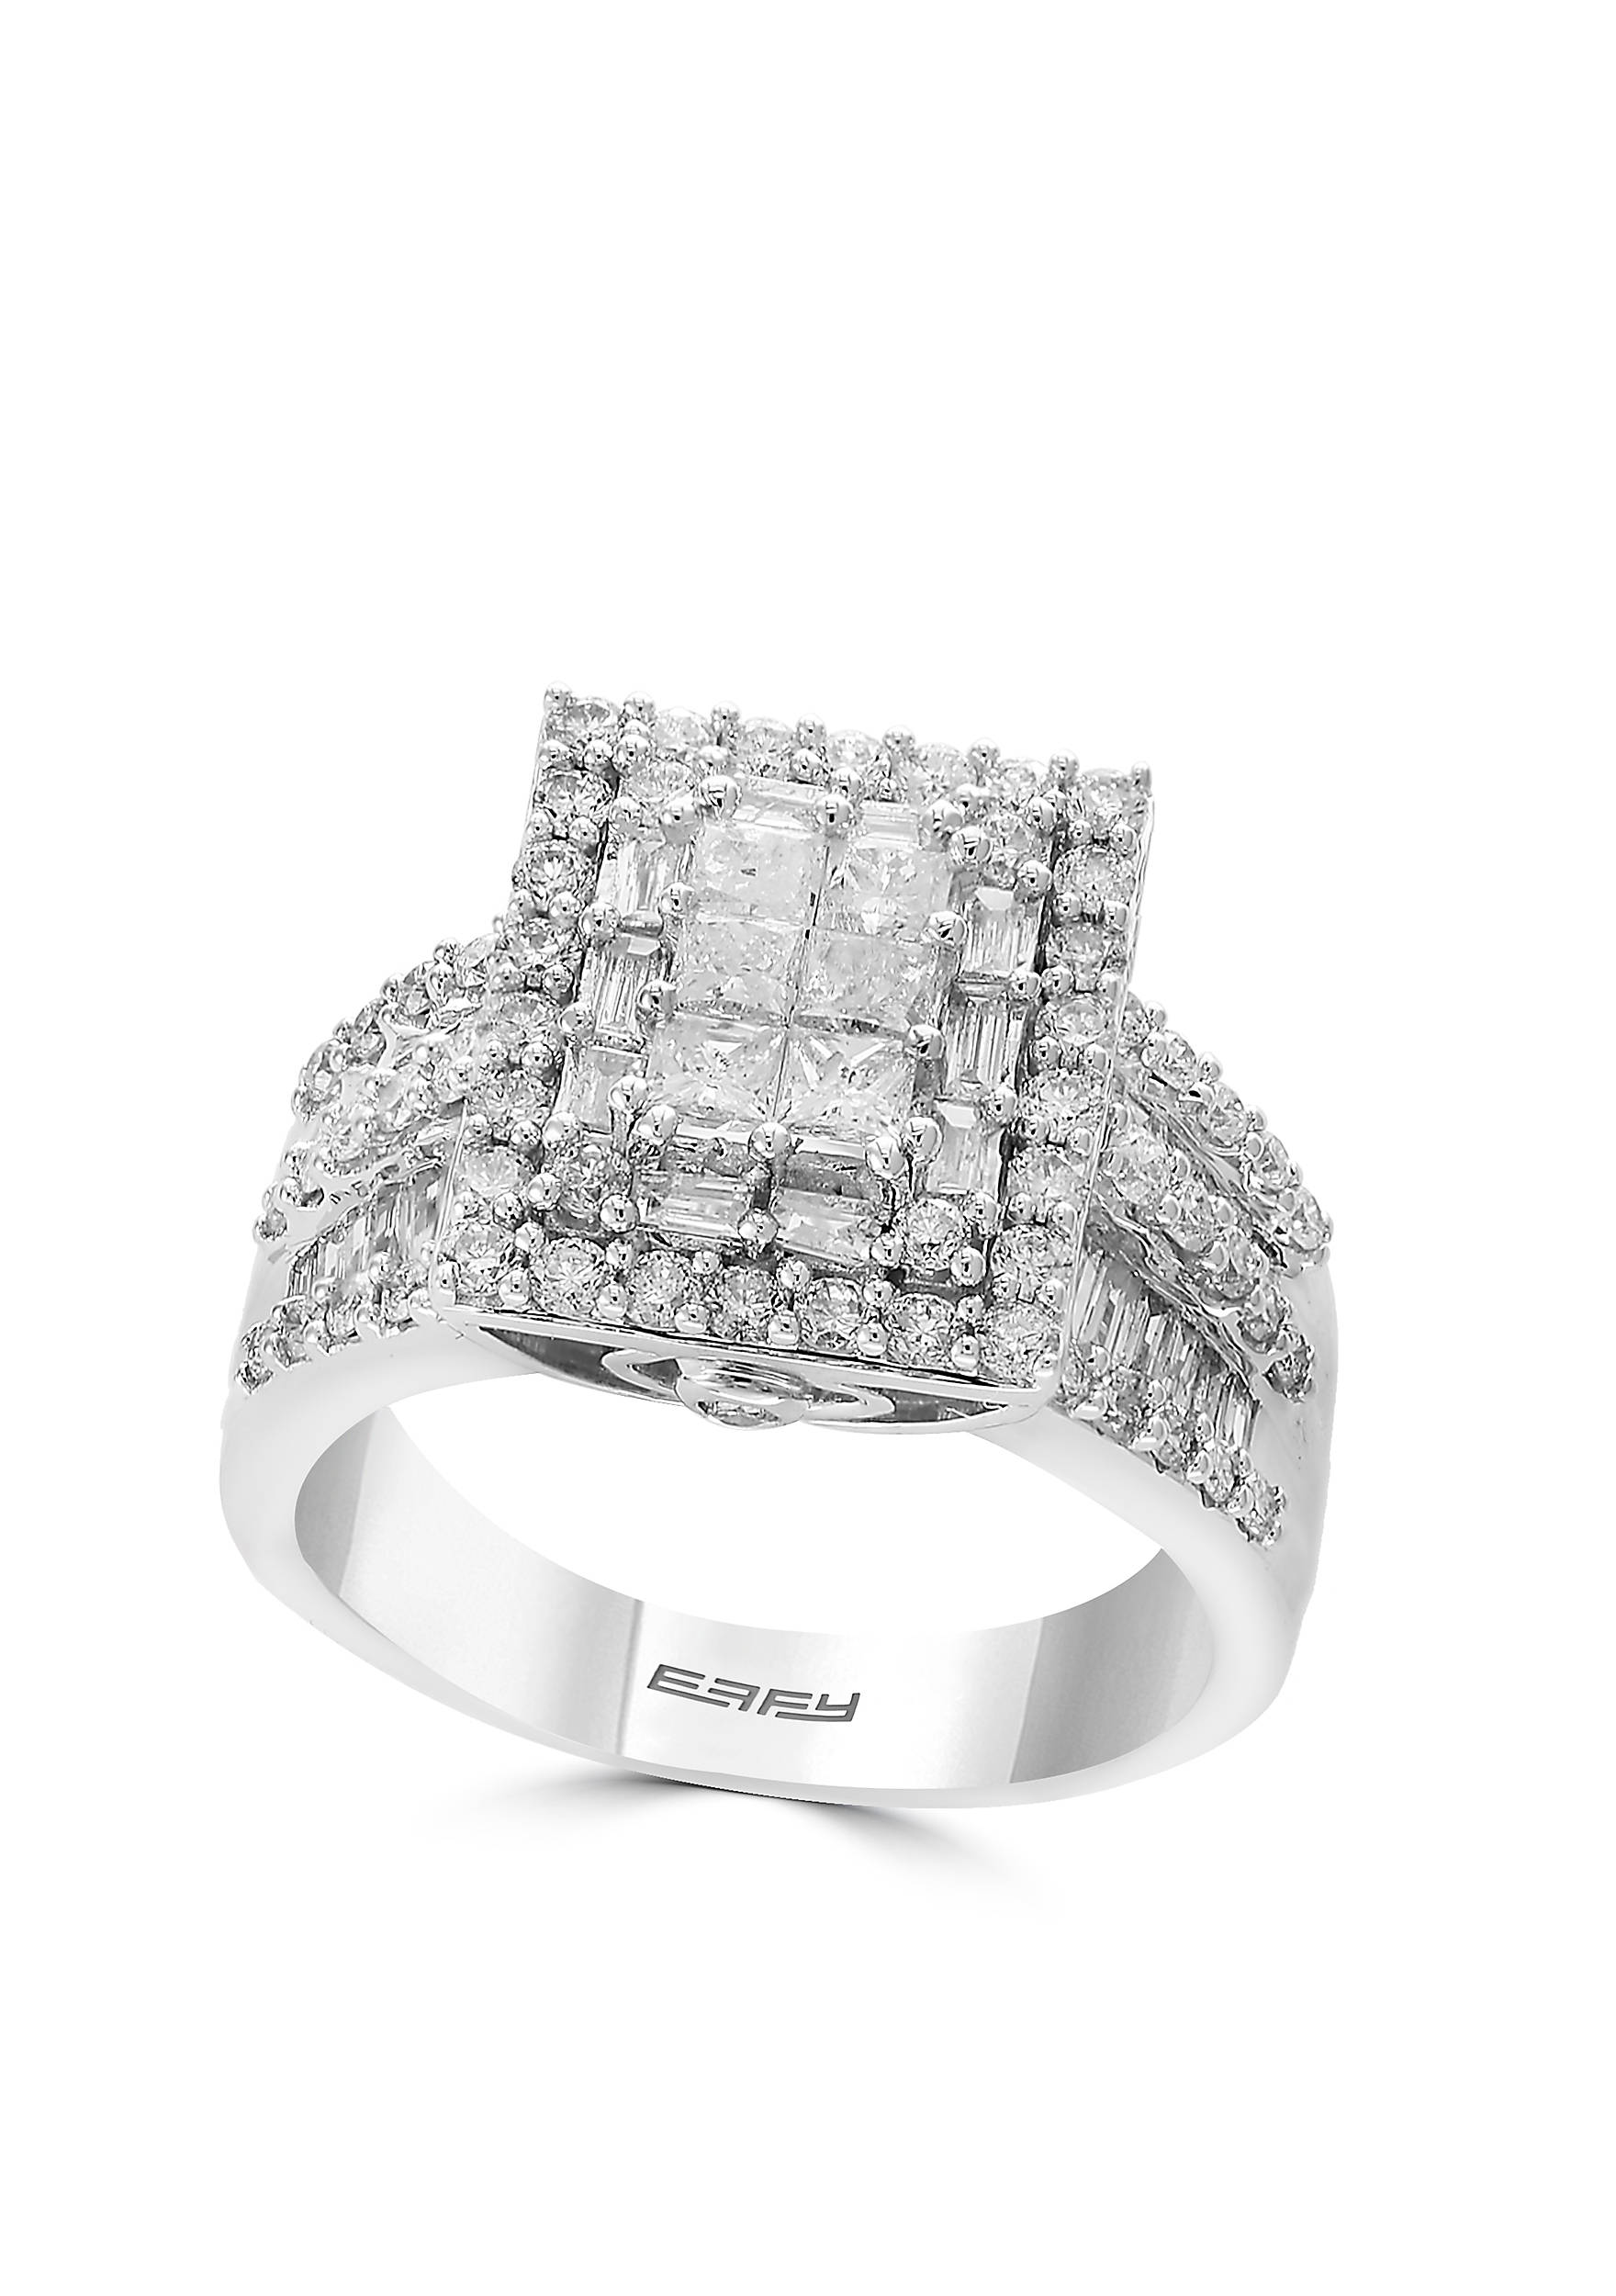 Wedding jewelry belk 20 ct tw diamond cluster ring in 14k white gold junglespirit Gallery